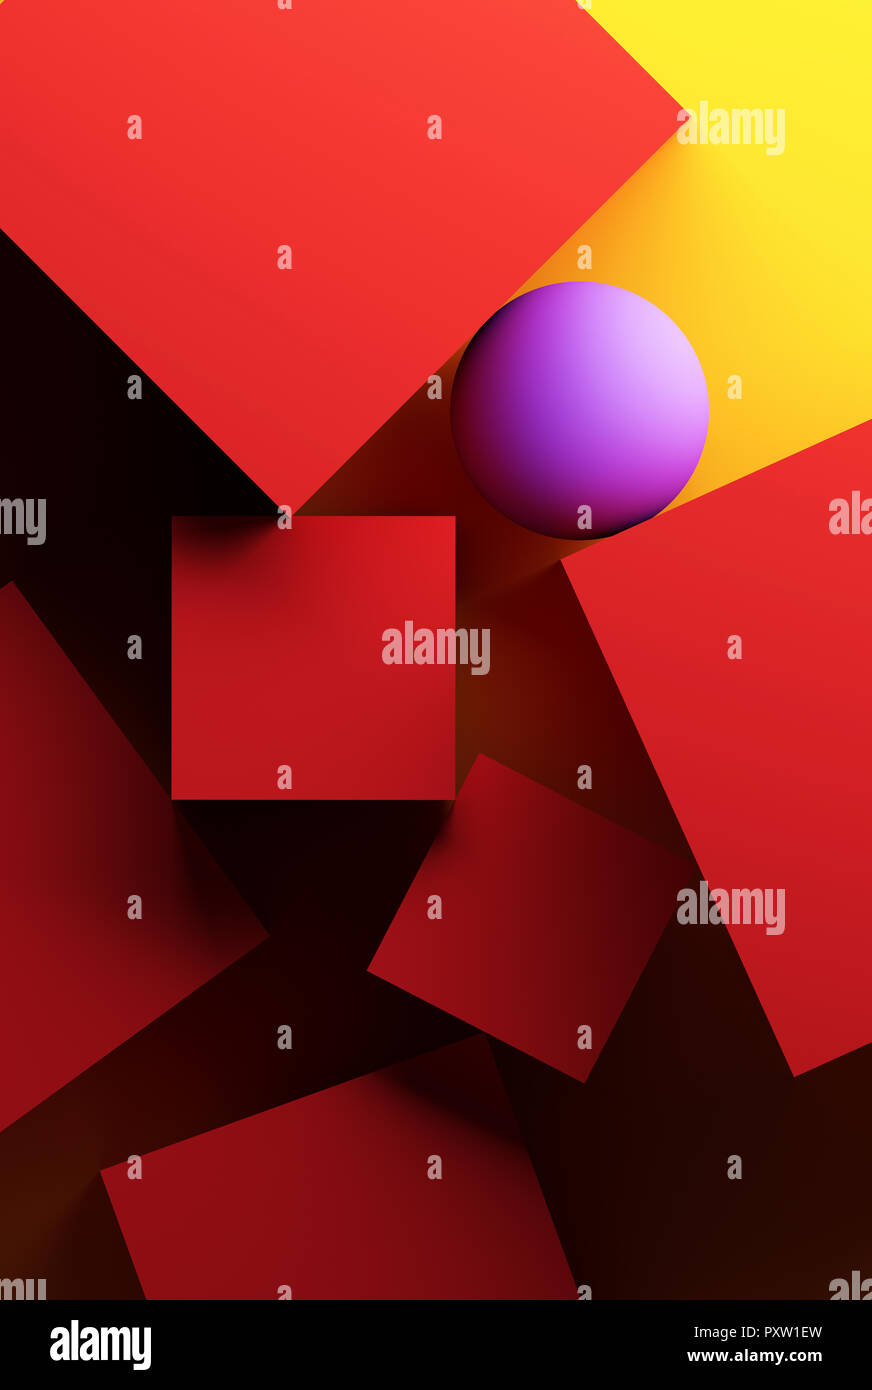 Yellow background with geometric shapes - Stock Image